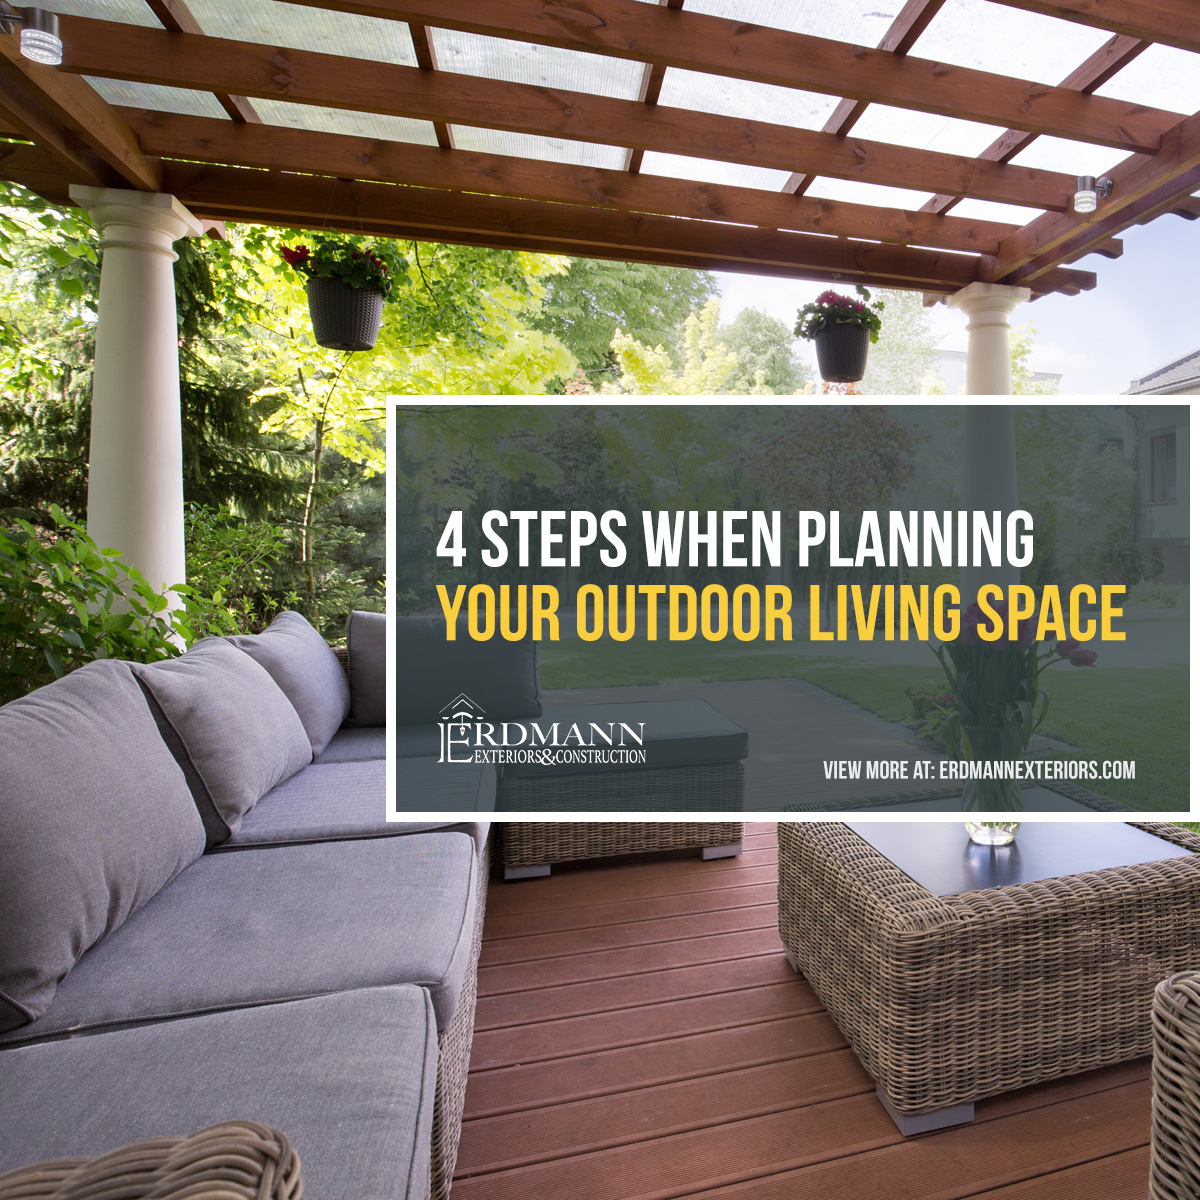 Outdoor Living Space Design 4 steps when planning your outdoor living space | erdmann